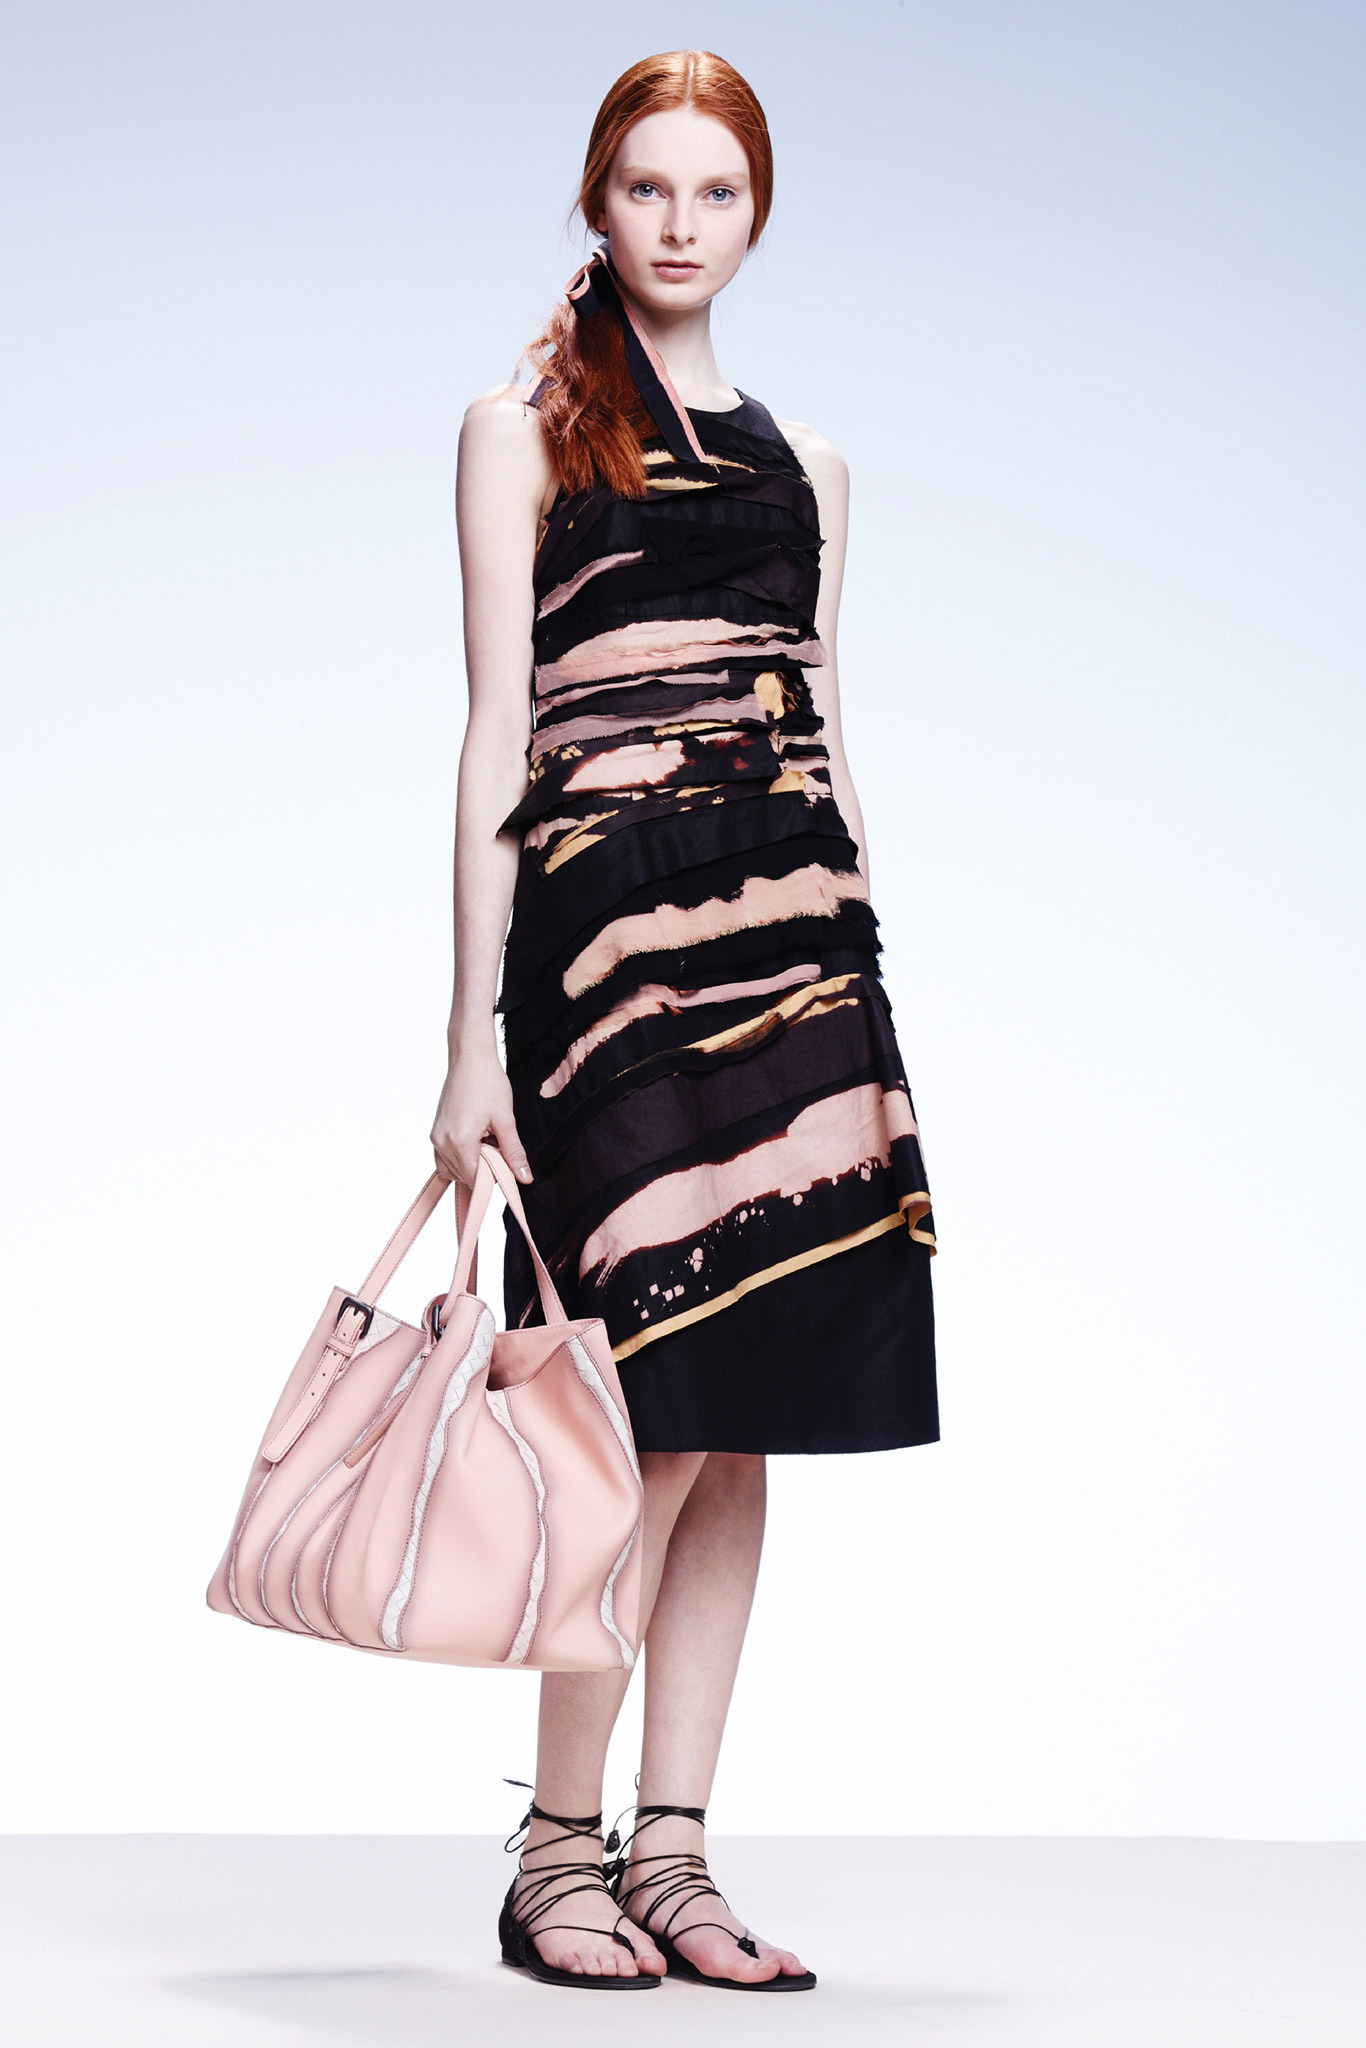 Dasha Gold | Bottega Veneta Resort 2015 (Photography: Courtesy Of Bottega Veneta via Style.com)